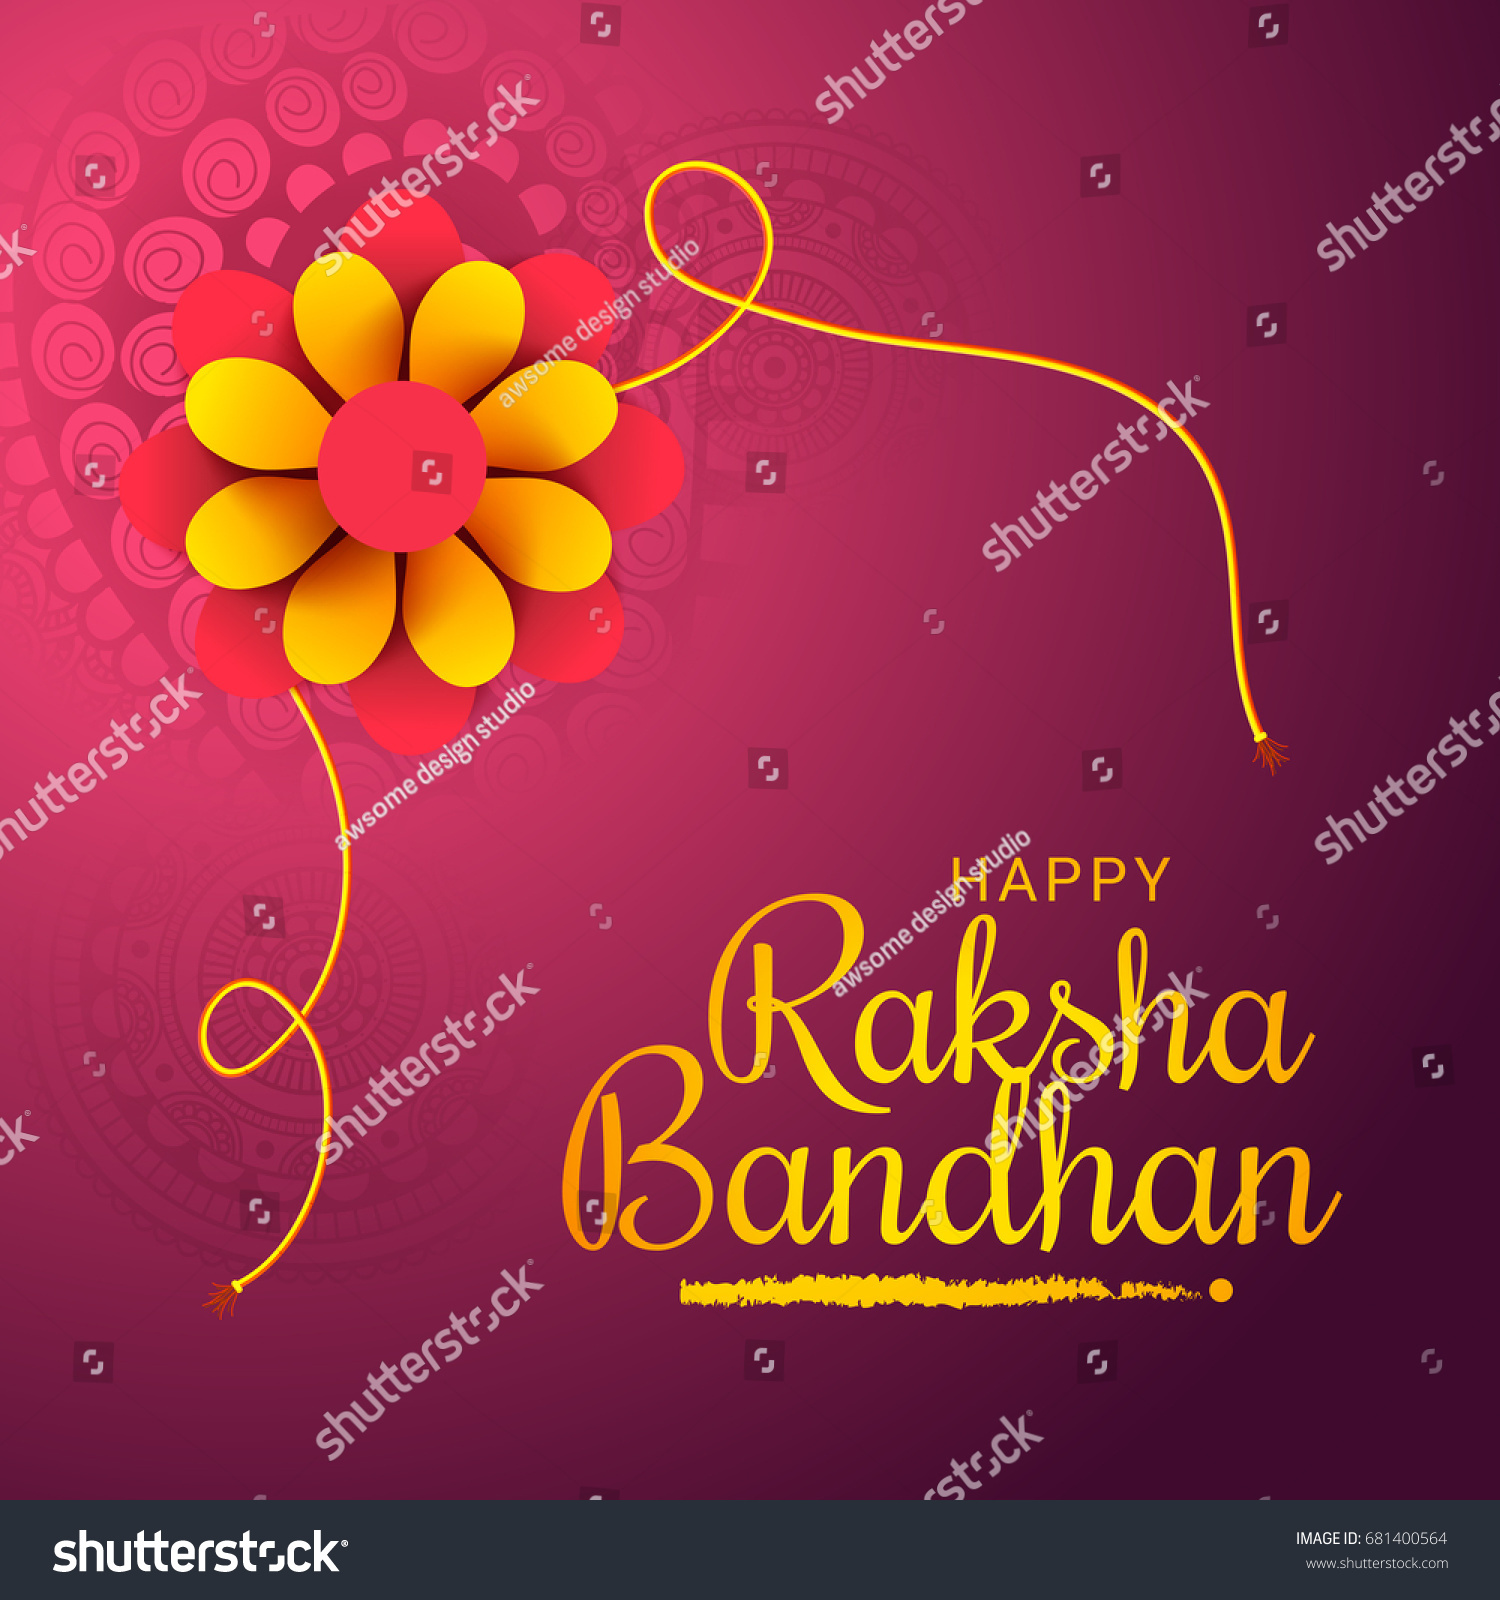 Illustrationgreeting card decorative rakhi raksha bandhan stock illustrationgreeting card of decorative rakhi for raksha bandhan background m4hsunfo